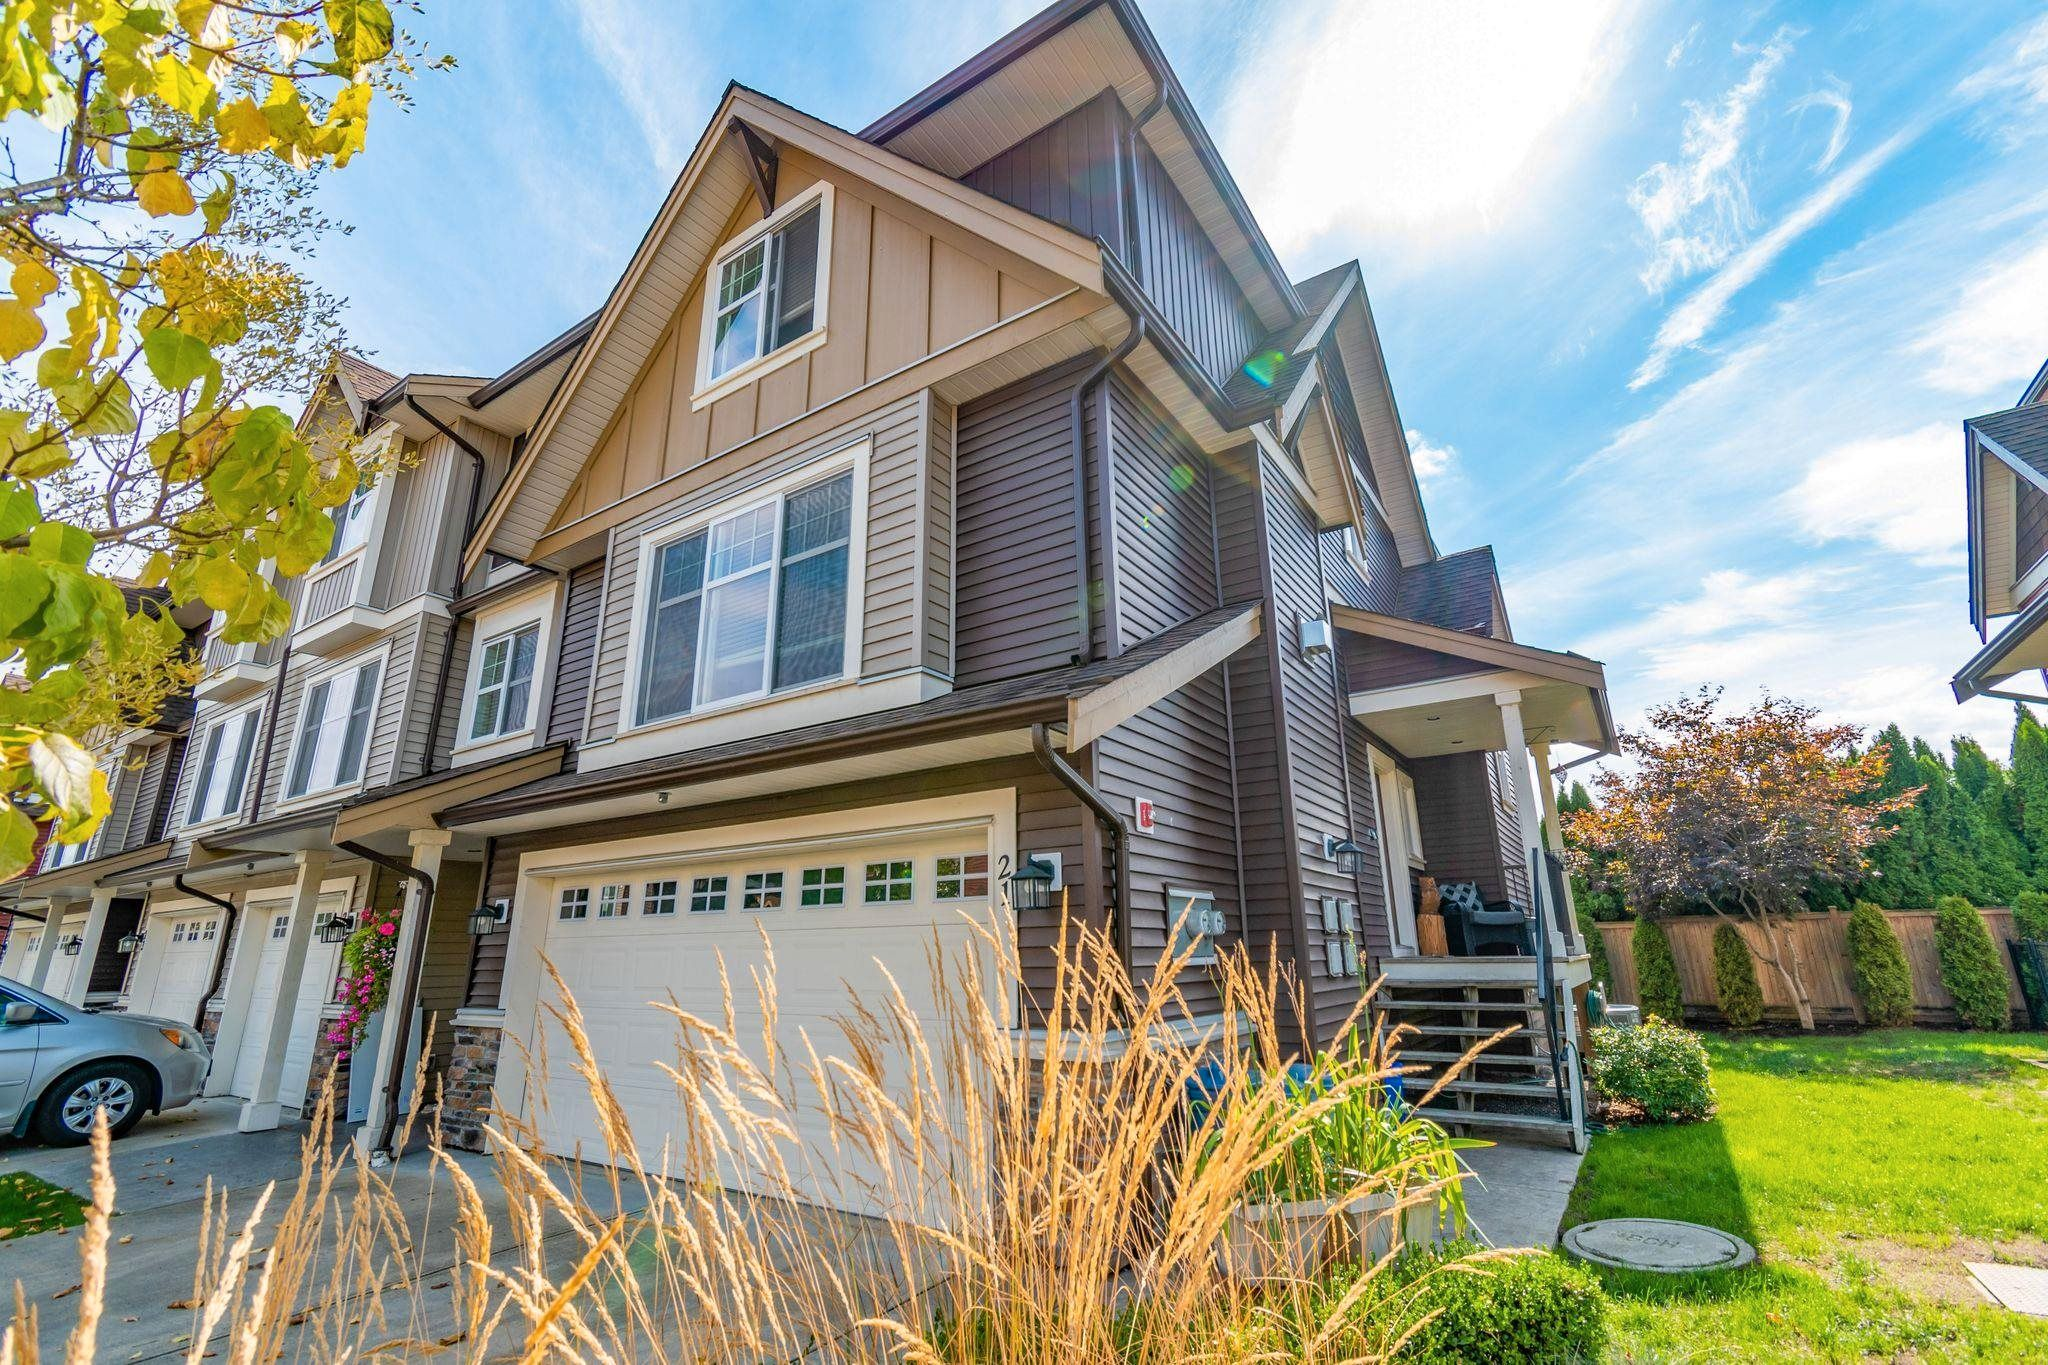 """Main Photo: 21 9750 MCNAUGHT Road in Chilliwack: Chilliwack E Young-Yale Townhouse for sale in """"Palisade Place"""" : MLS®# R2617726"""